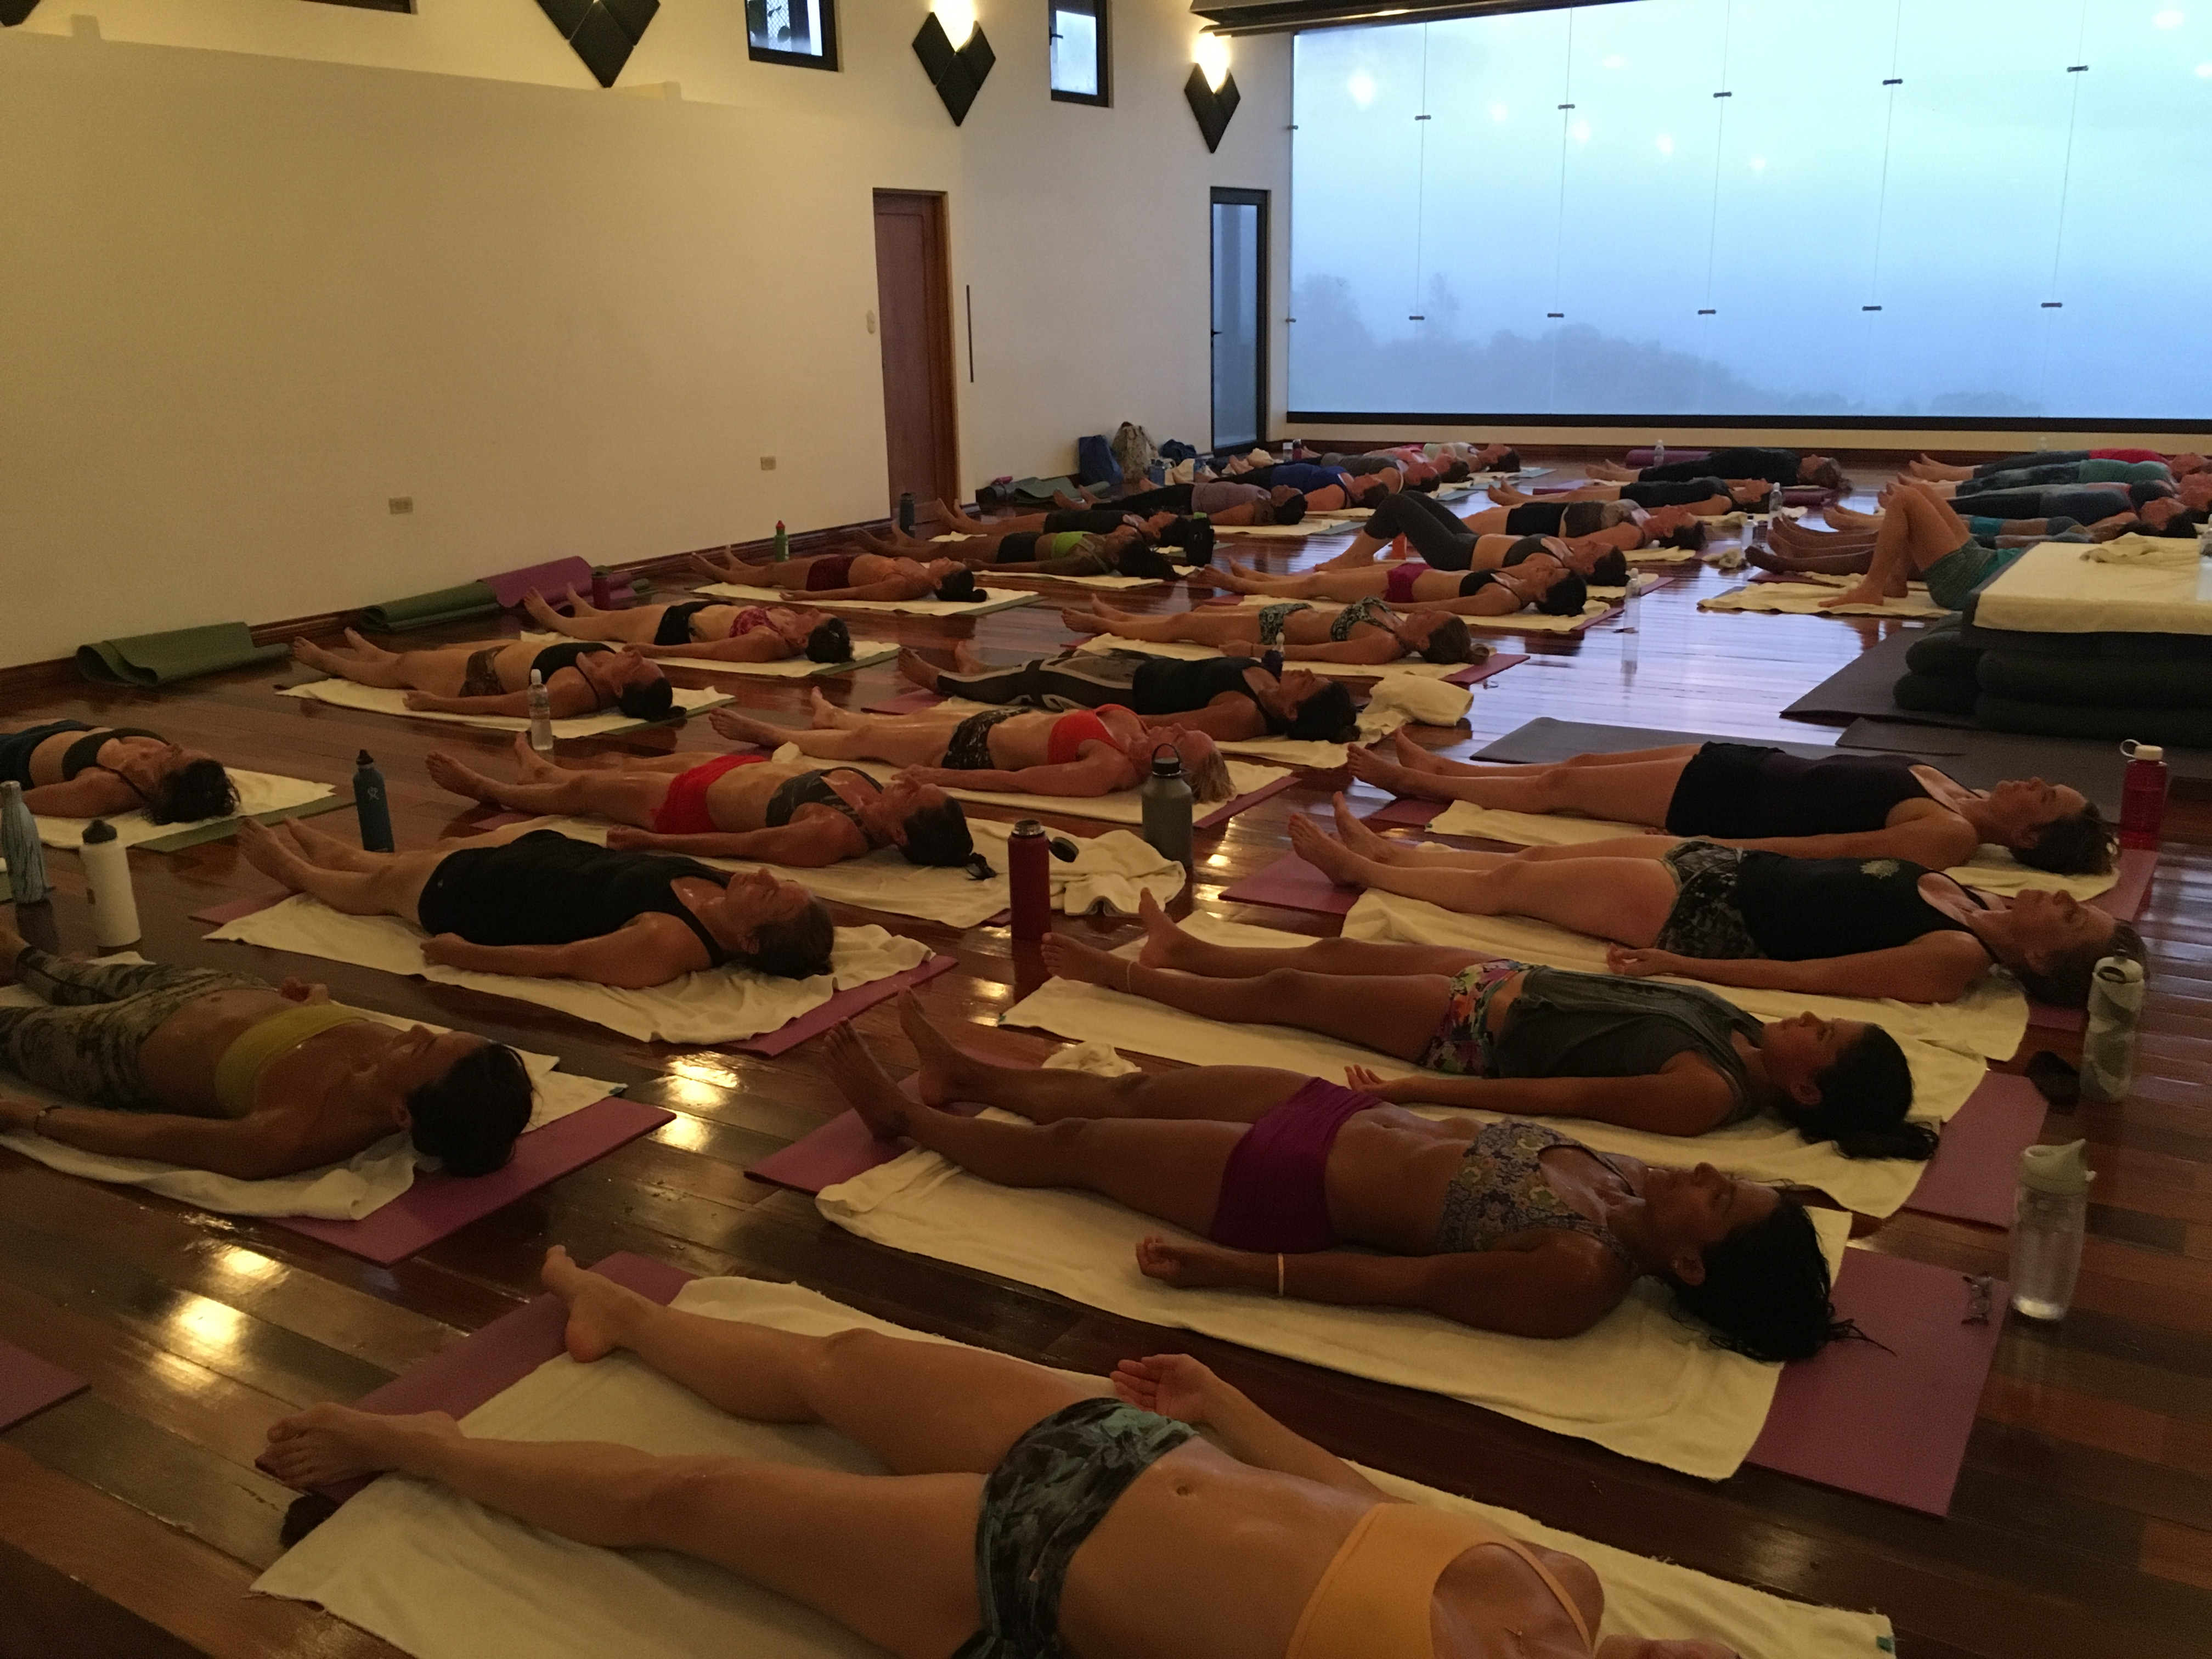 Reston Yoga Will Be Hosting The Hot Yoga Womenu0027s Retreat At The Art Of  Living Center In NC